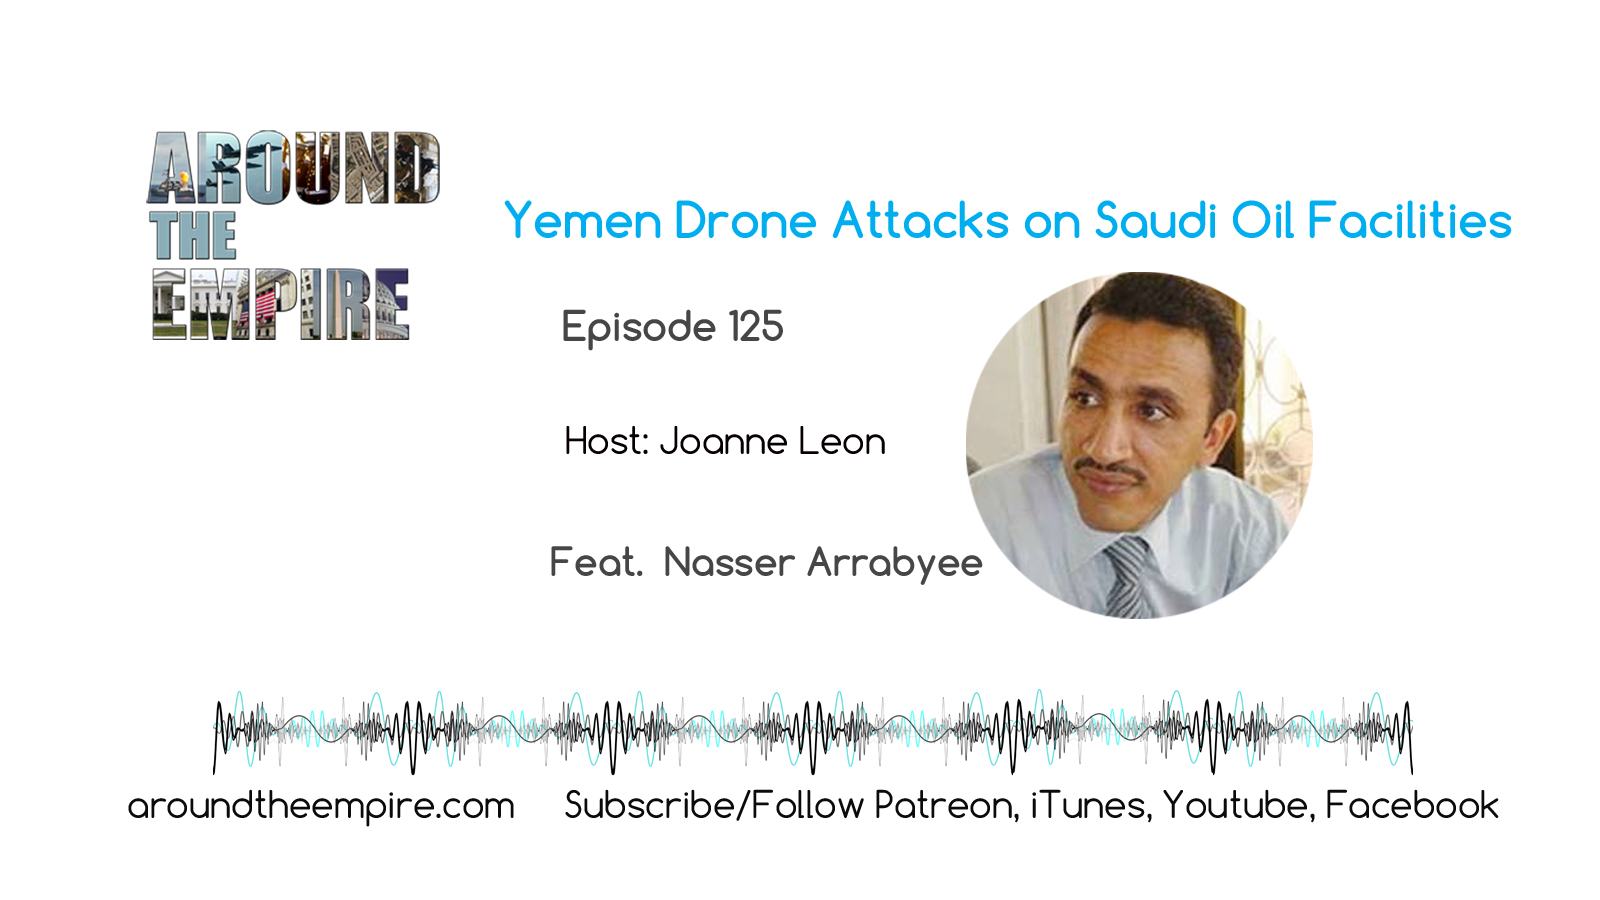 Ep 125 Yemen drone attacks on Saudi feat Nasser Arrabyee